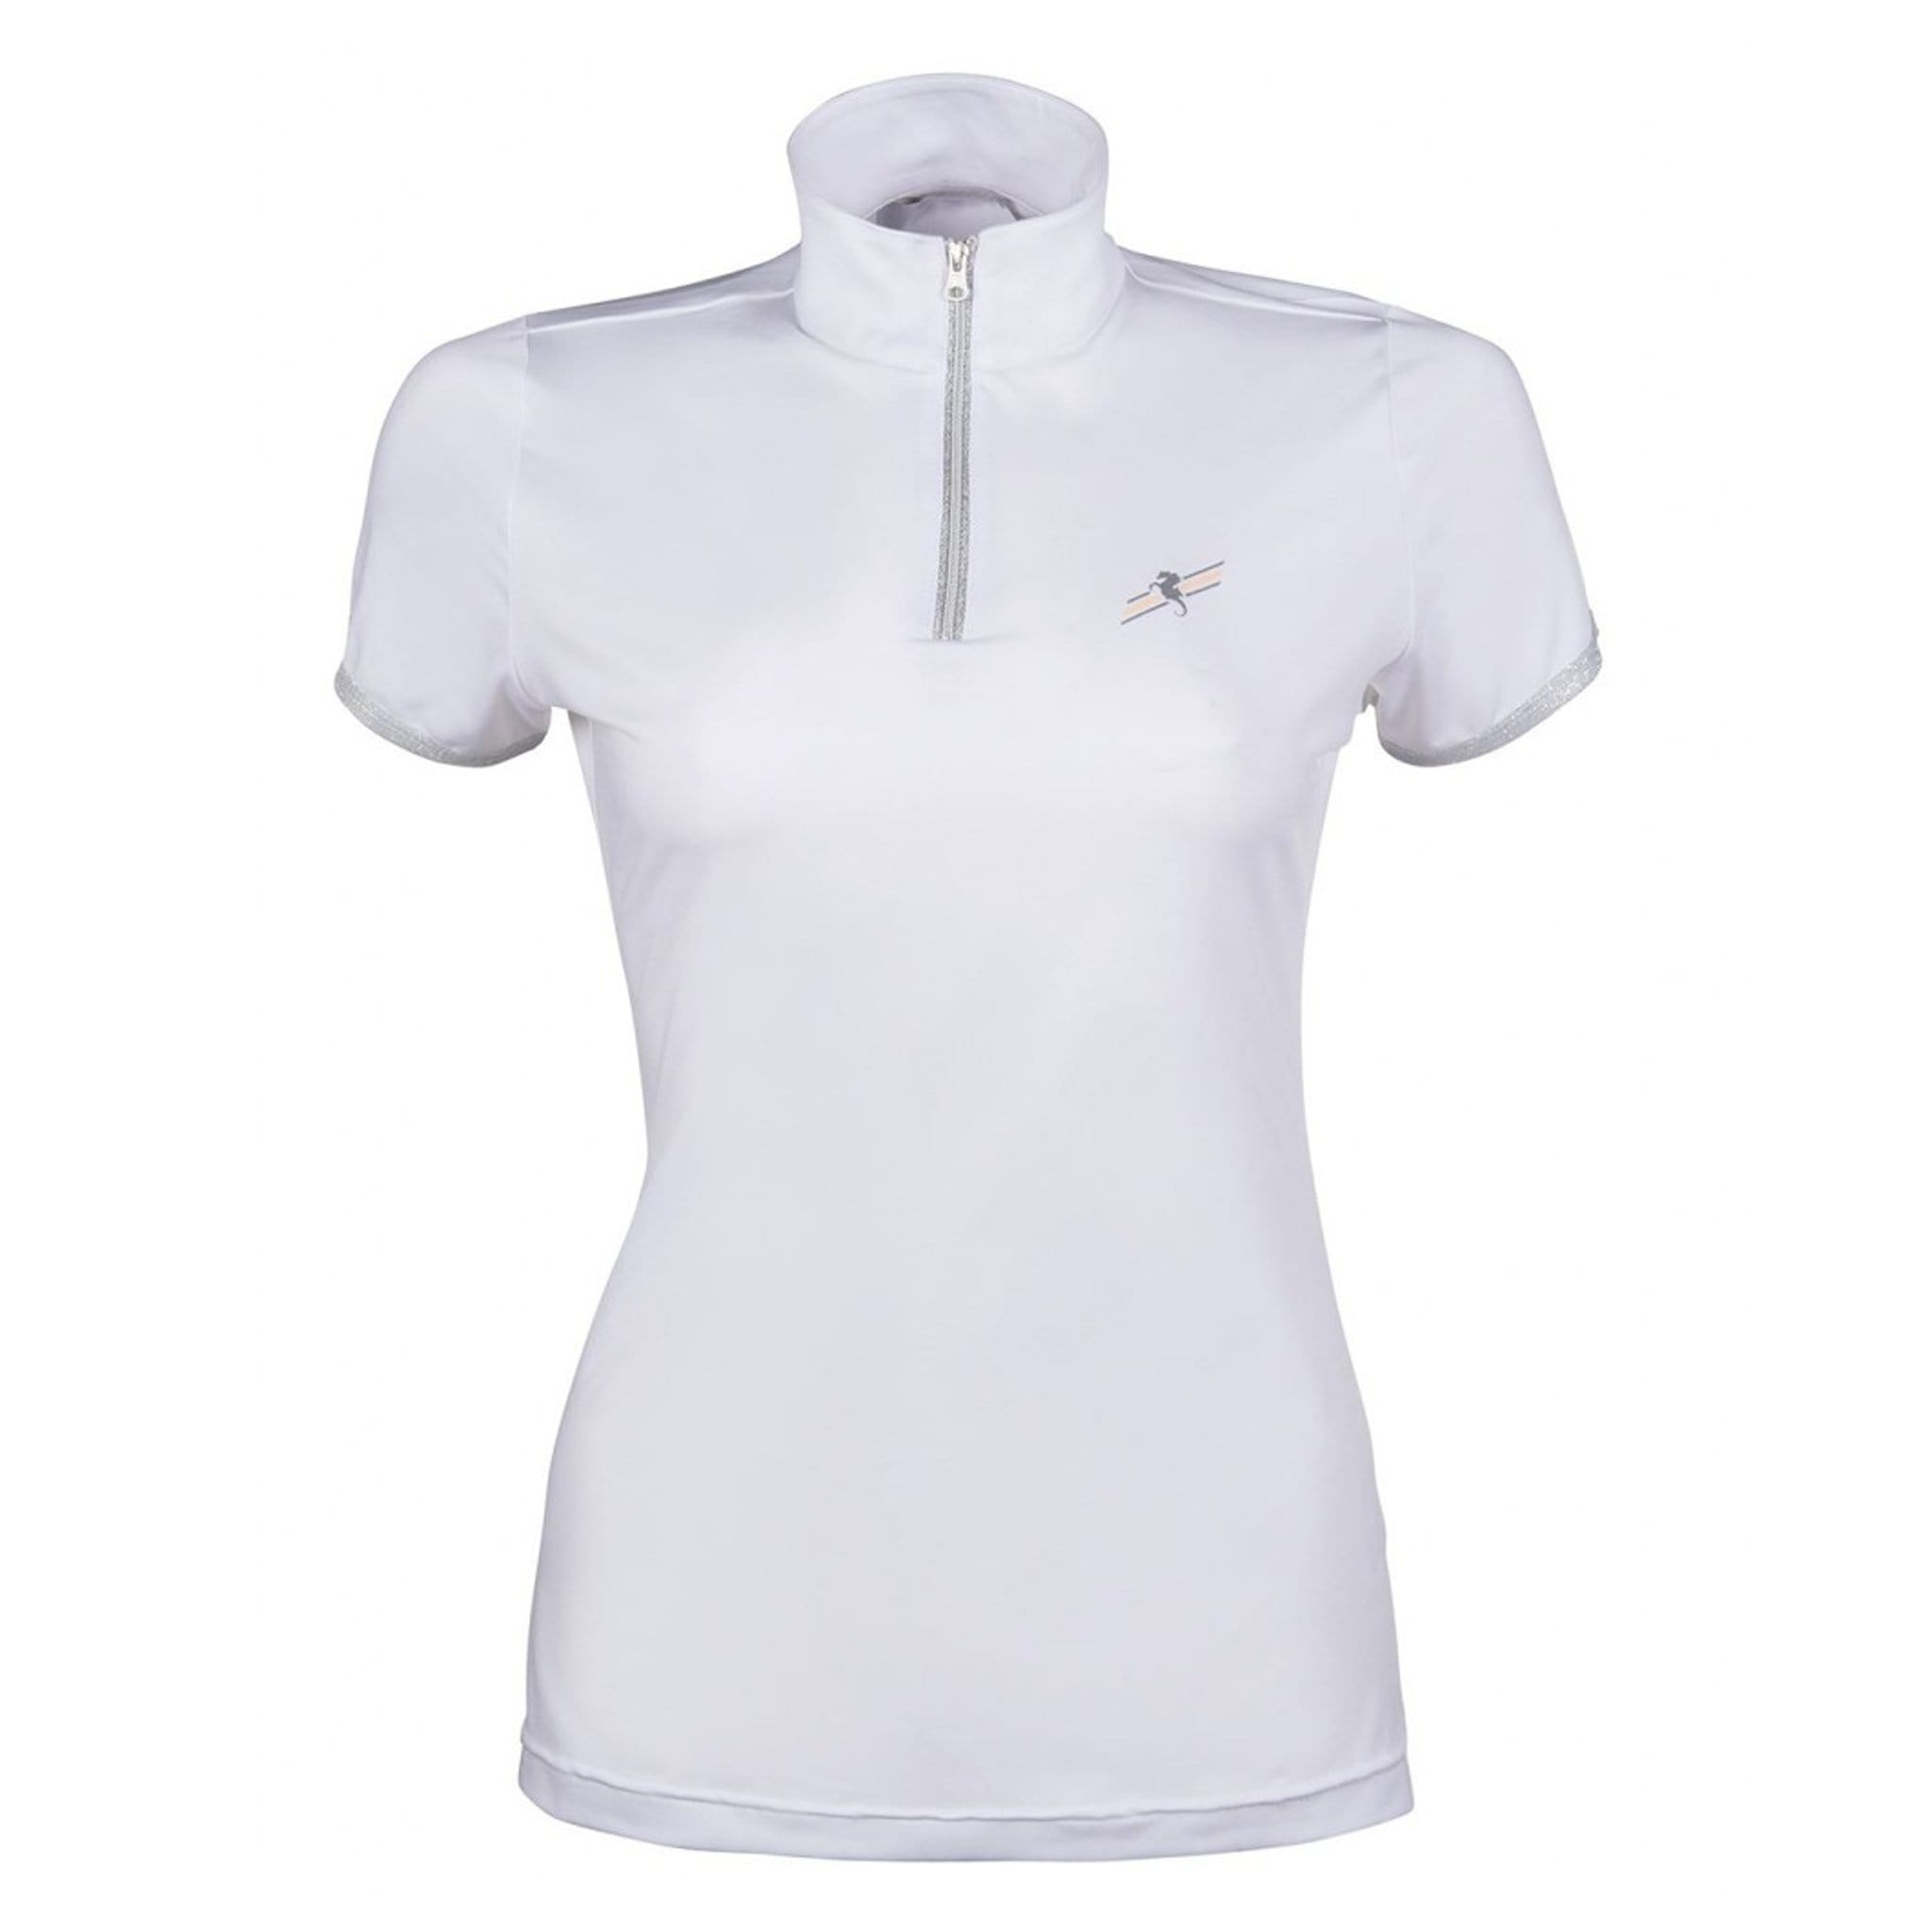 HKM Mondiale Short Sleeve Show Shirt 11649 White Front